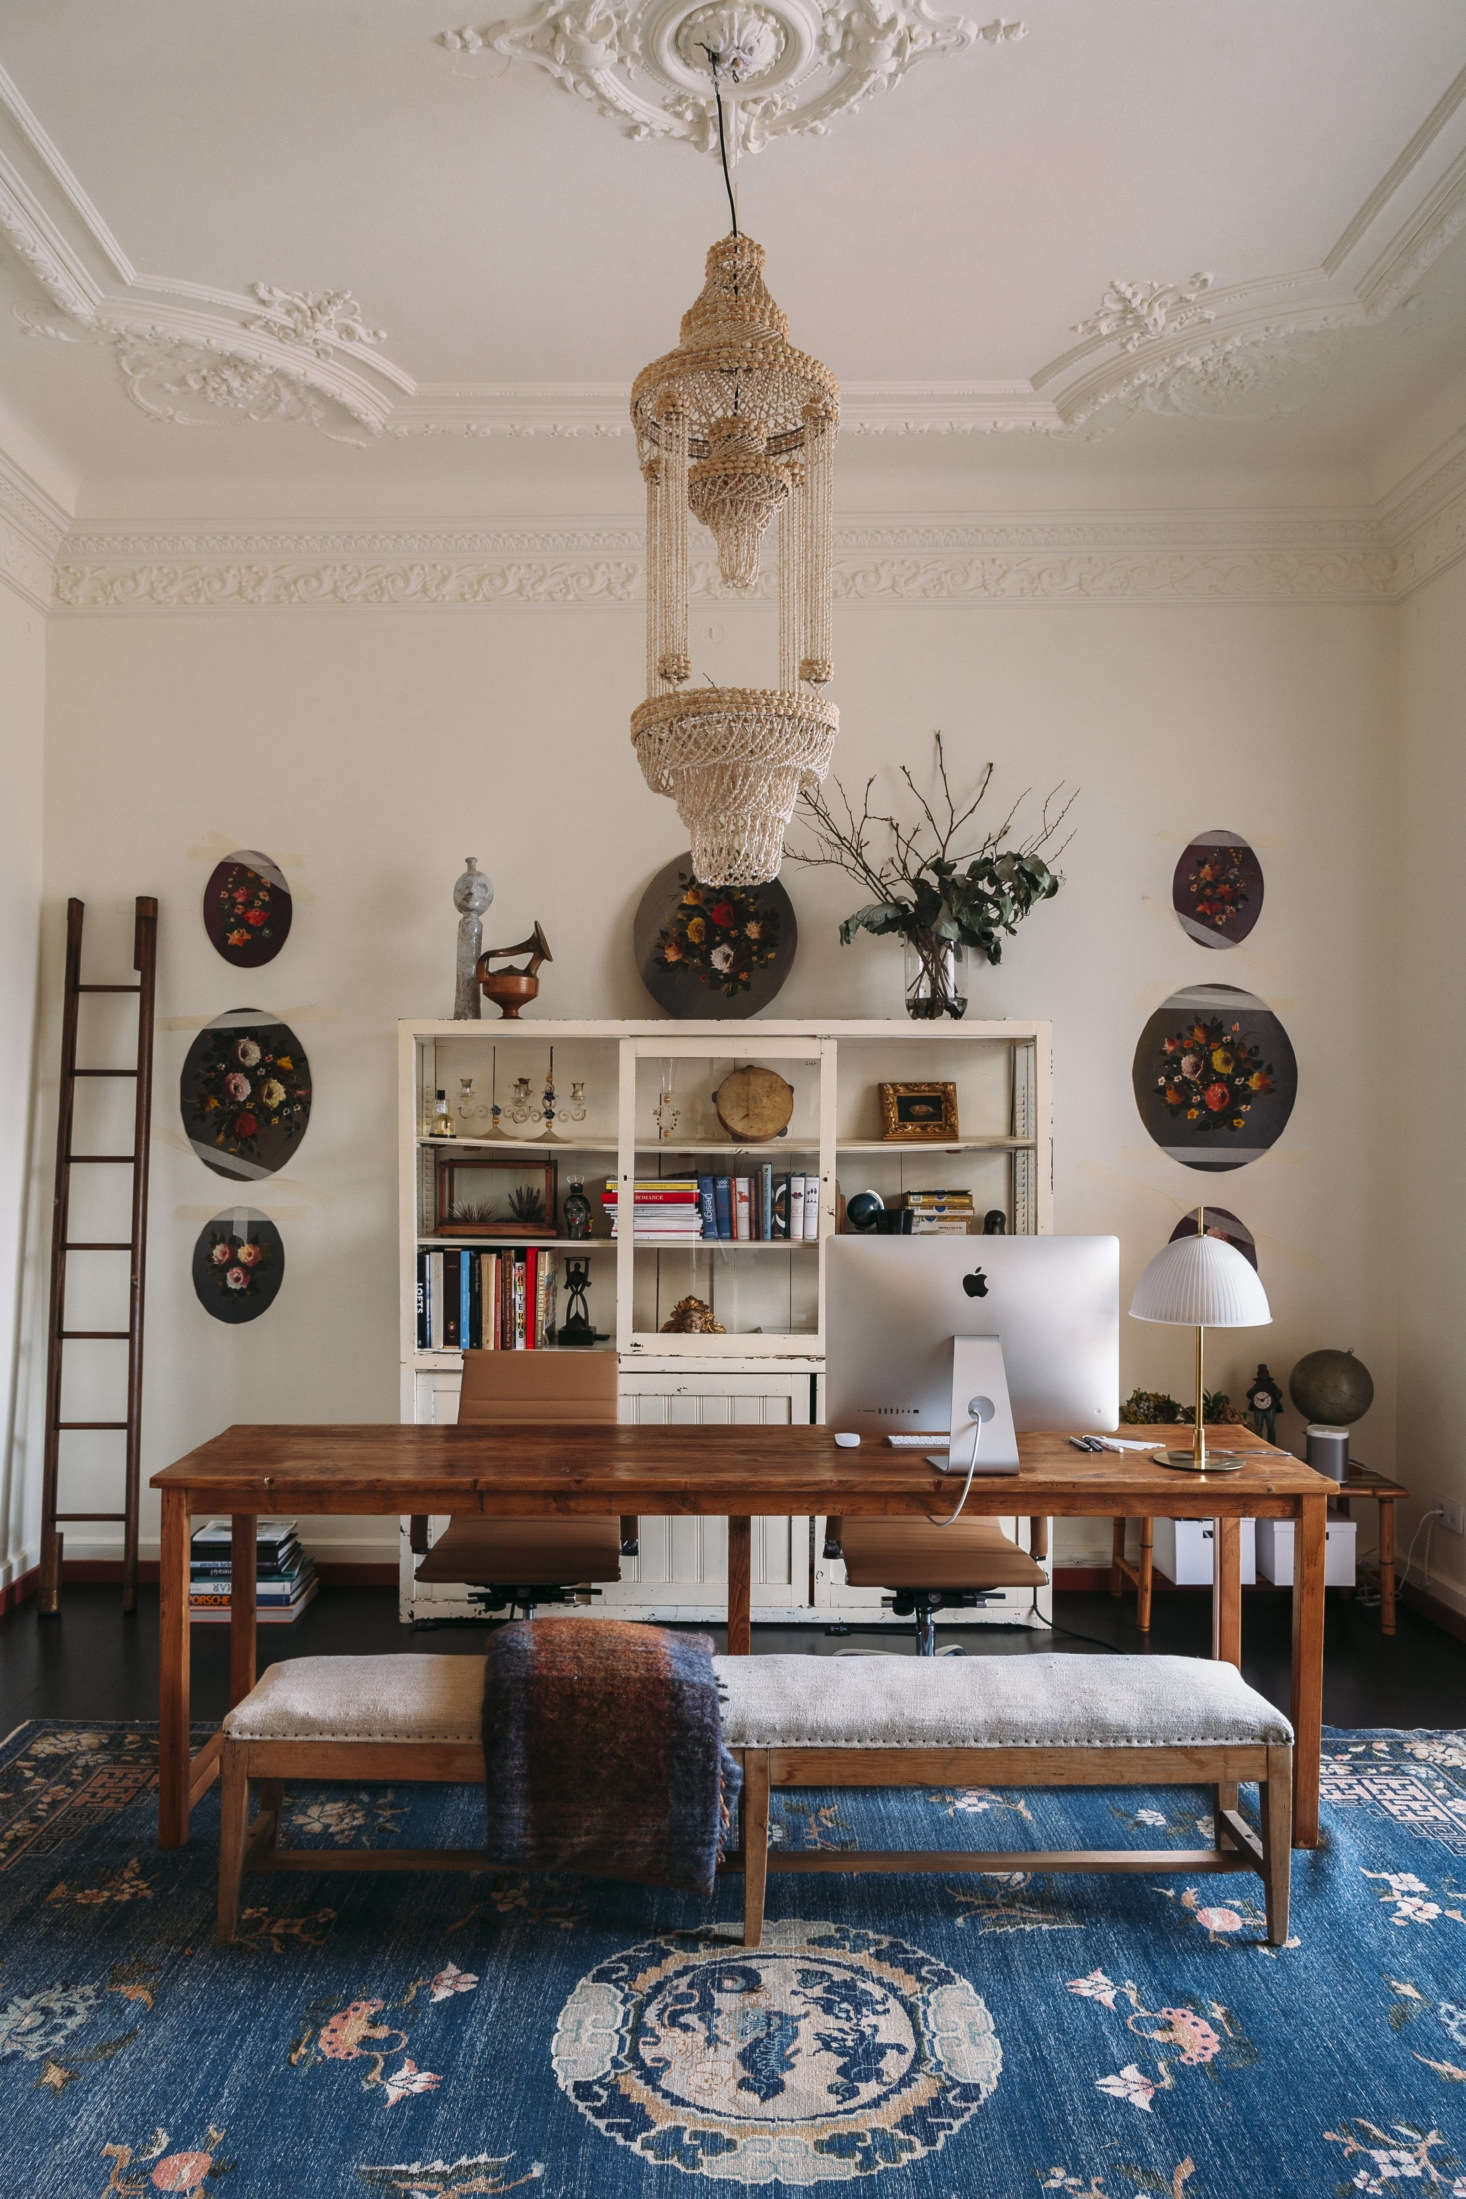 Off the entry, a work table stands on a Chinese art deco rug under a beaded chandelier.